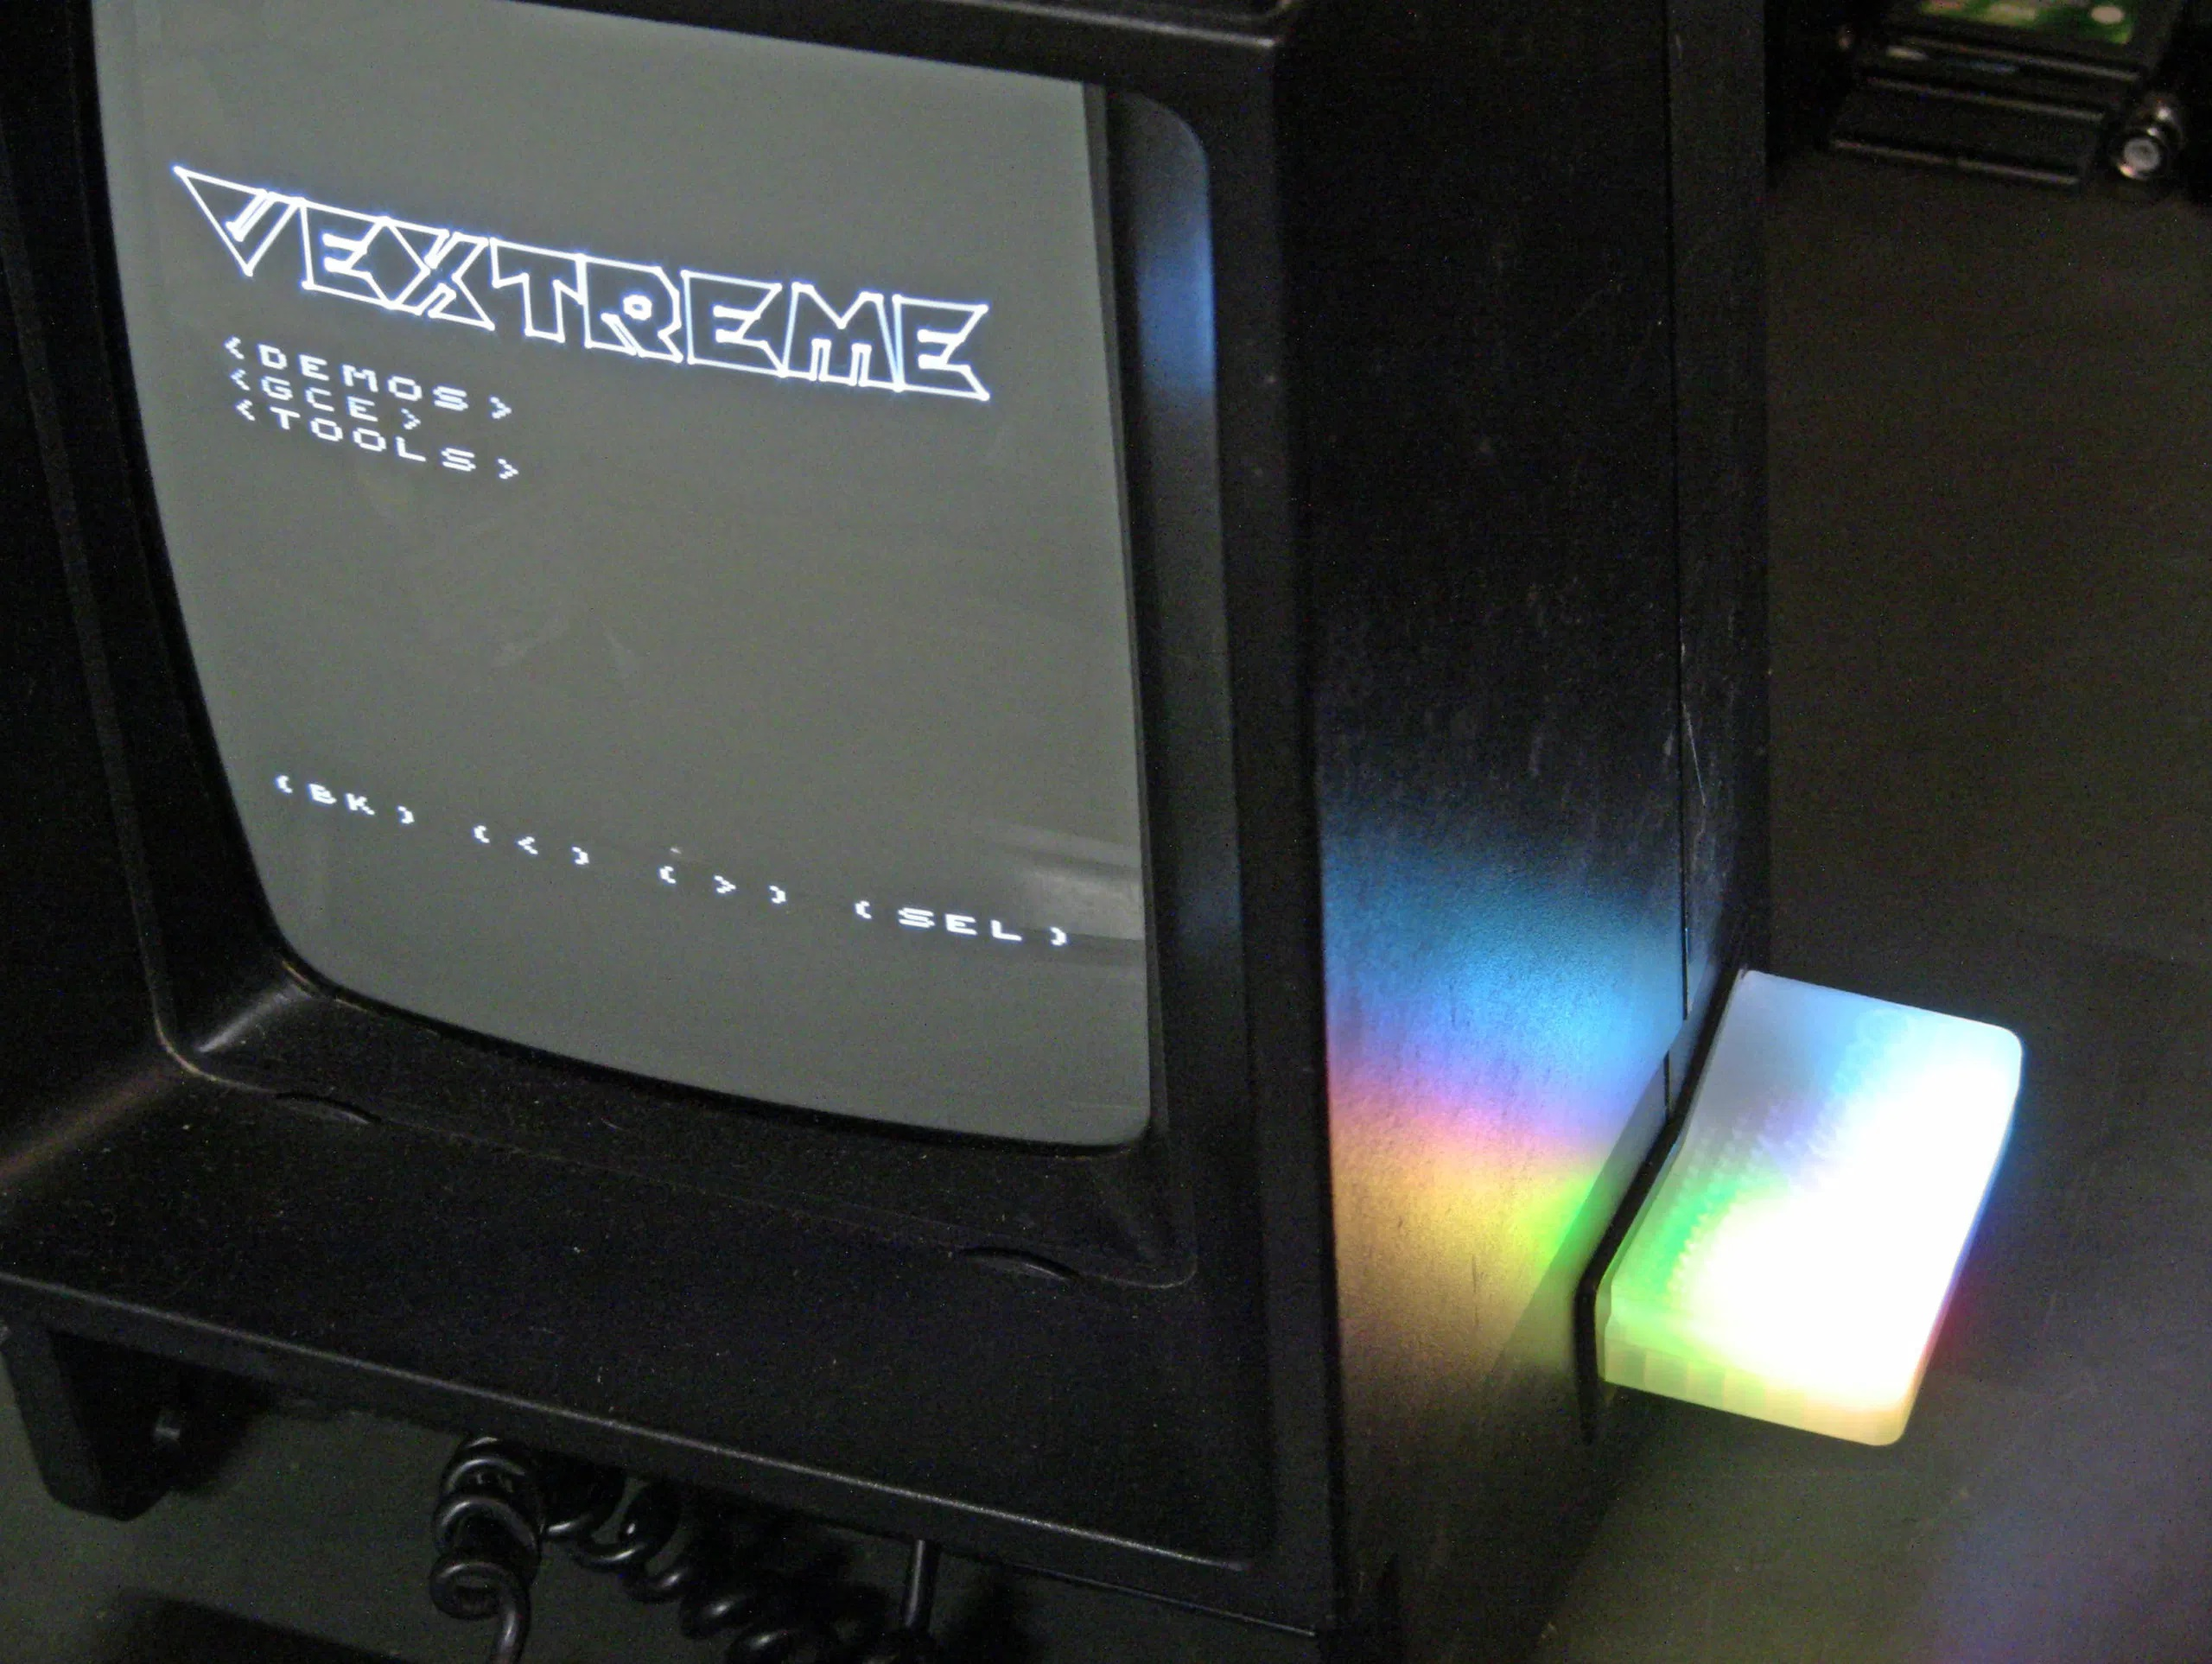 Vextreme up for sale by GameTechUS